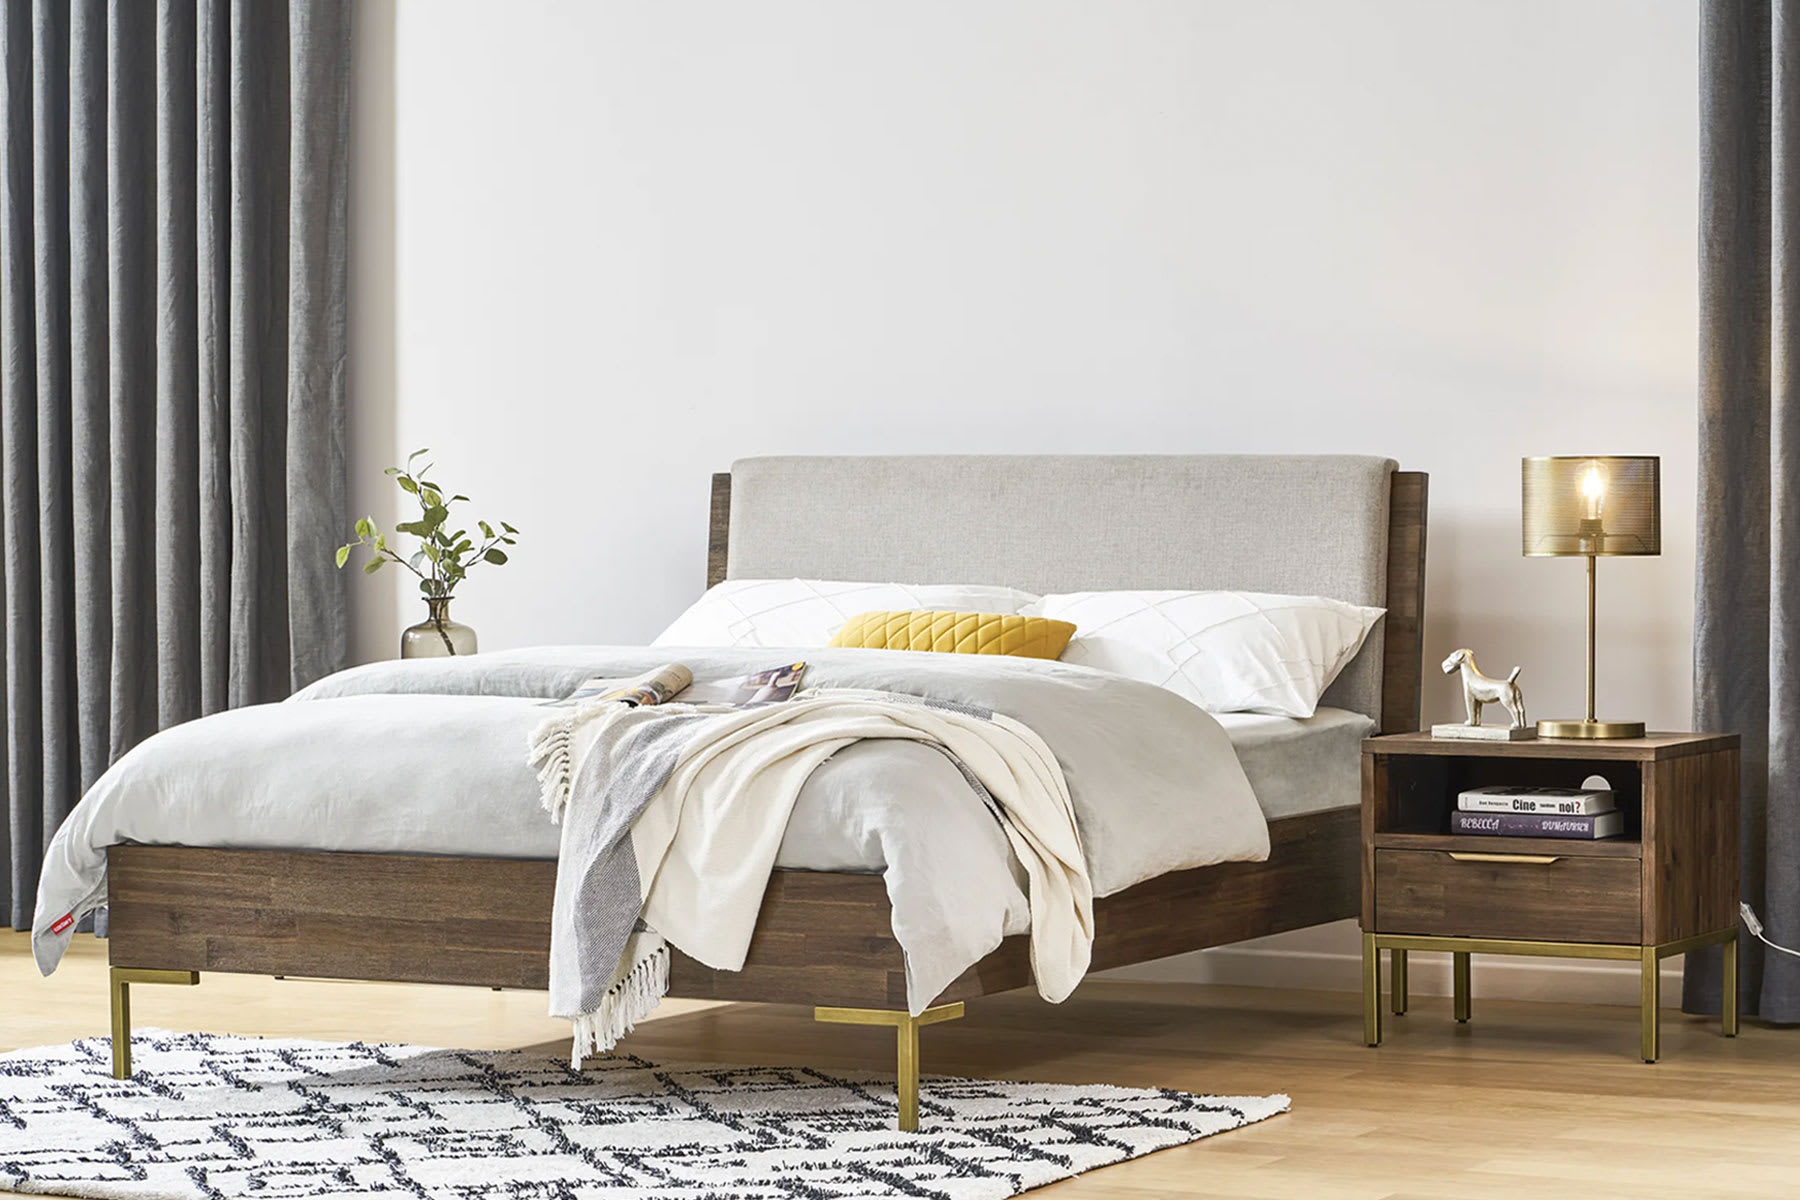 Mid-century modern bed frame with gold legs, bedside table and carpet